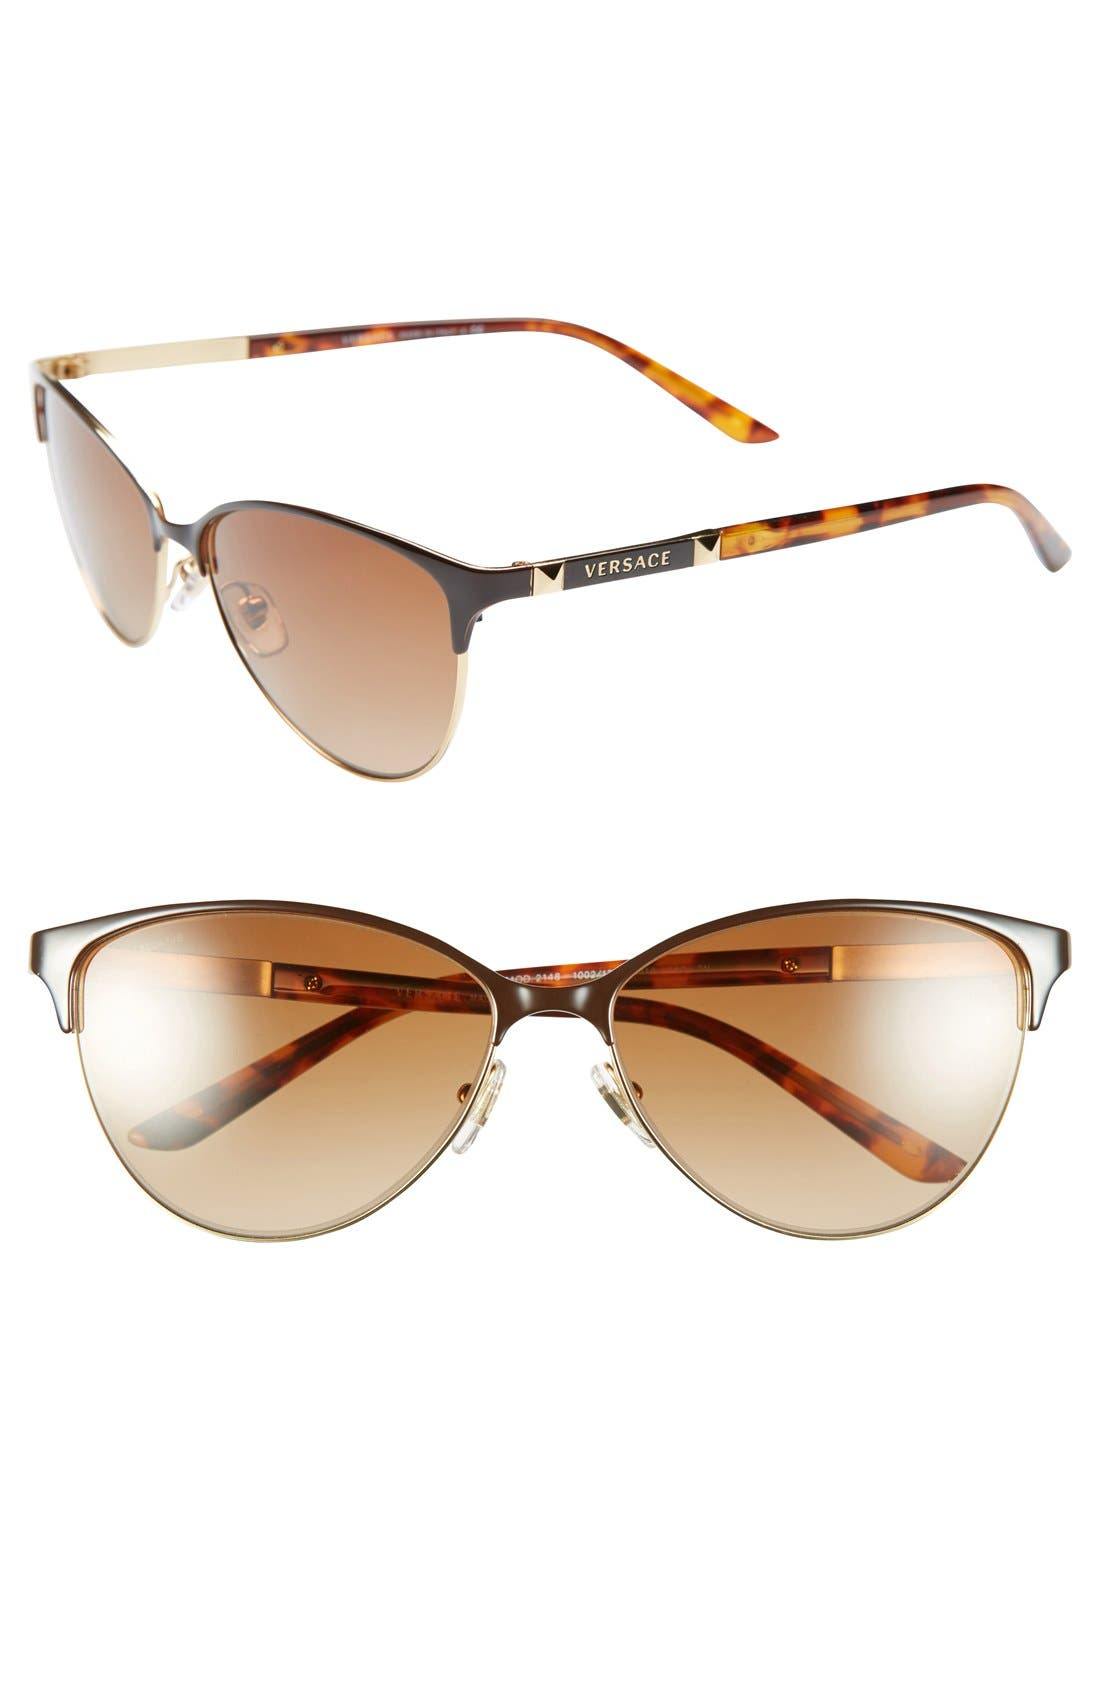 Main Image - Versace 57mm Cat Eye Sunglasses